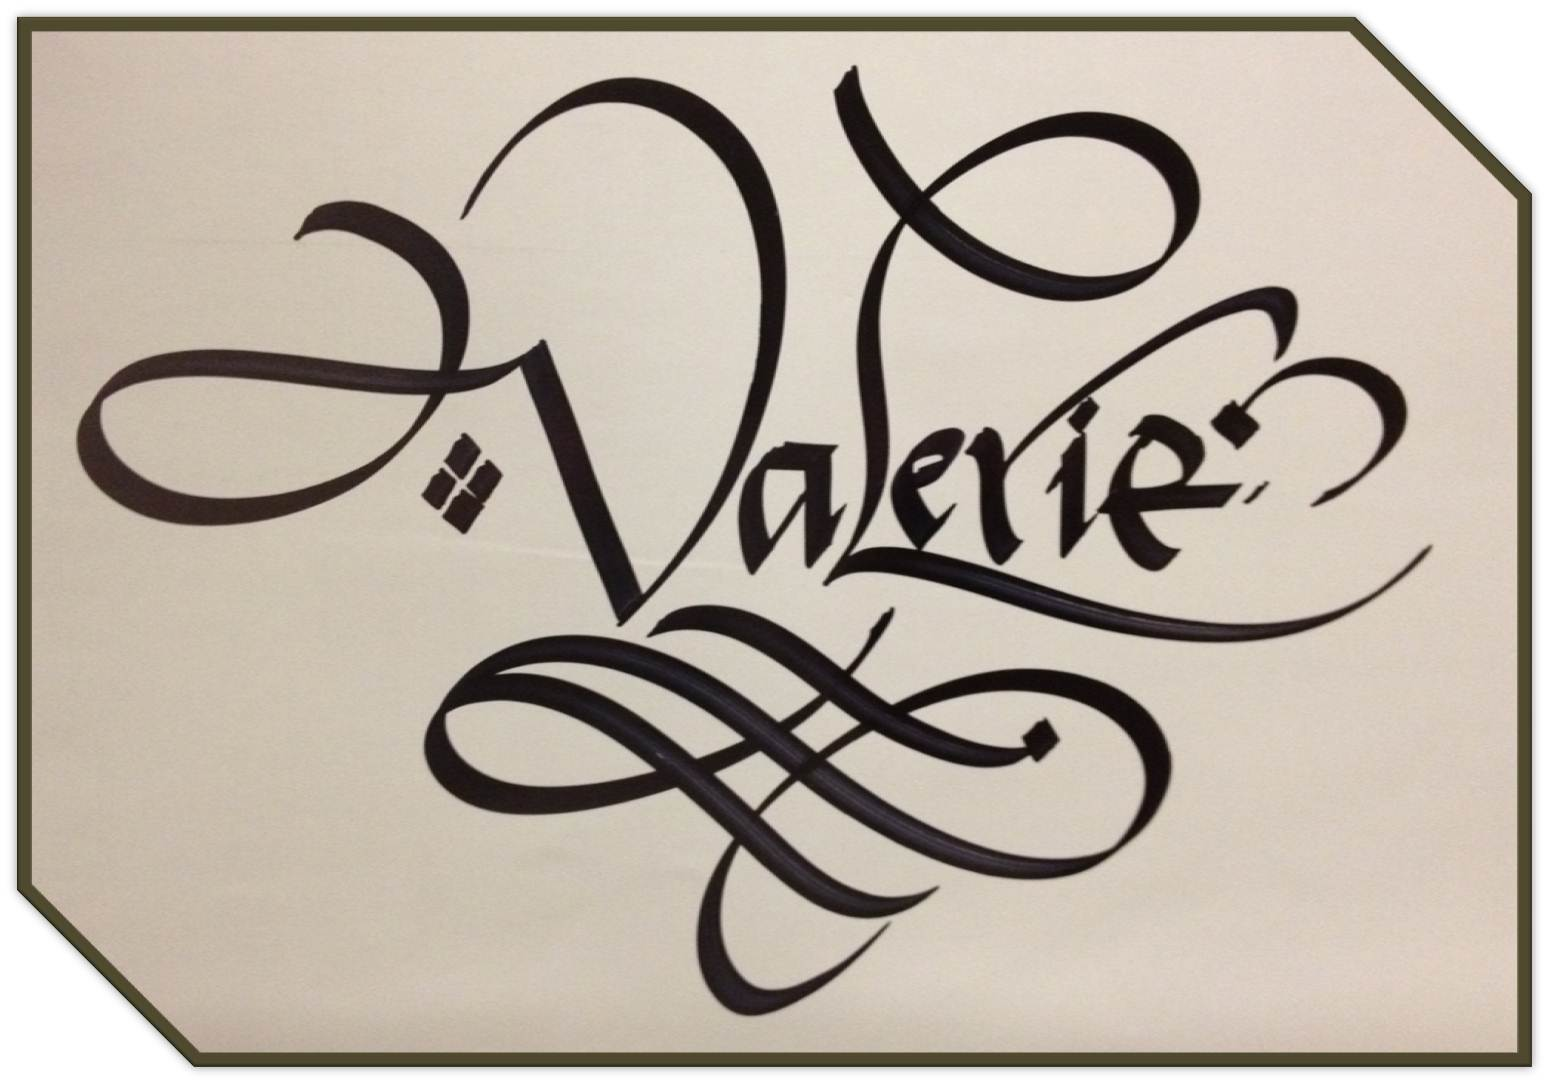 Calligraphy art russian names in calligraphy valerie My name in calligraphy